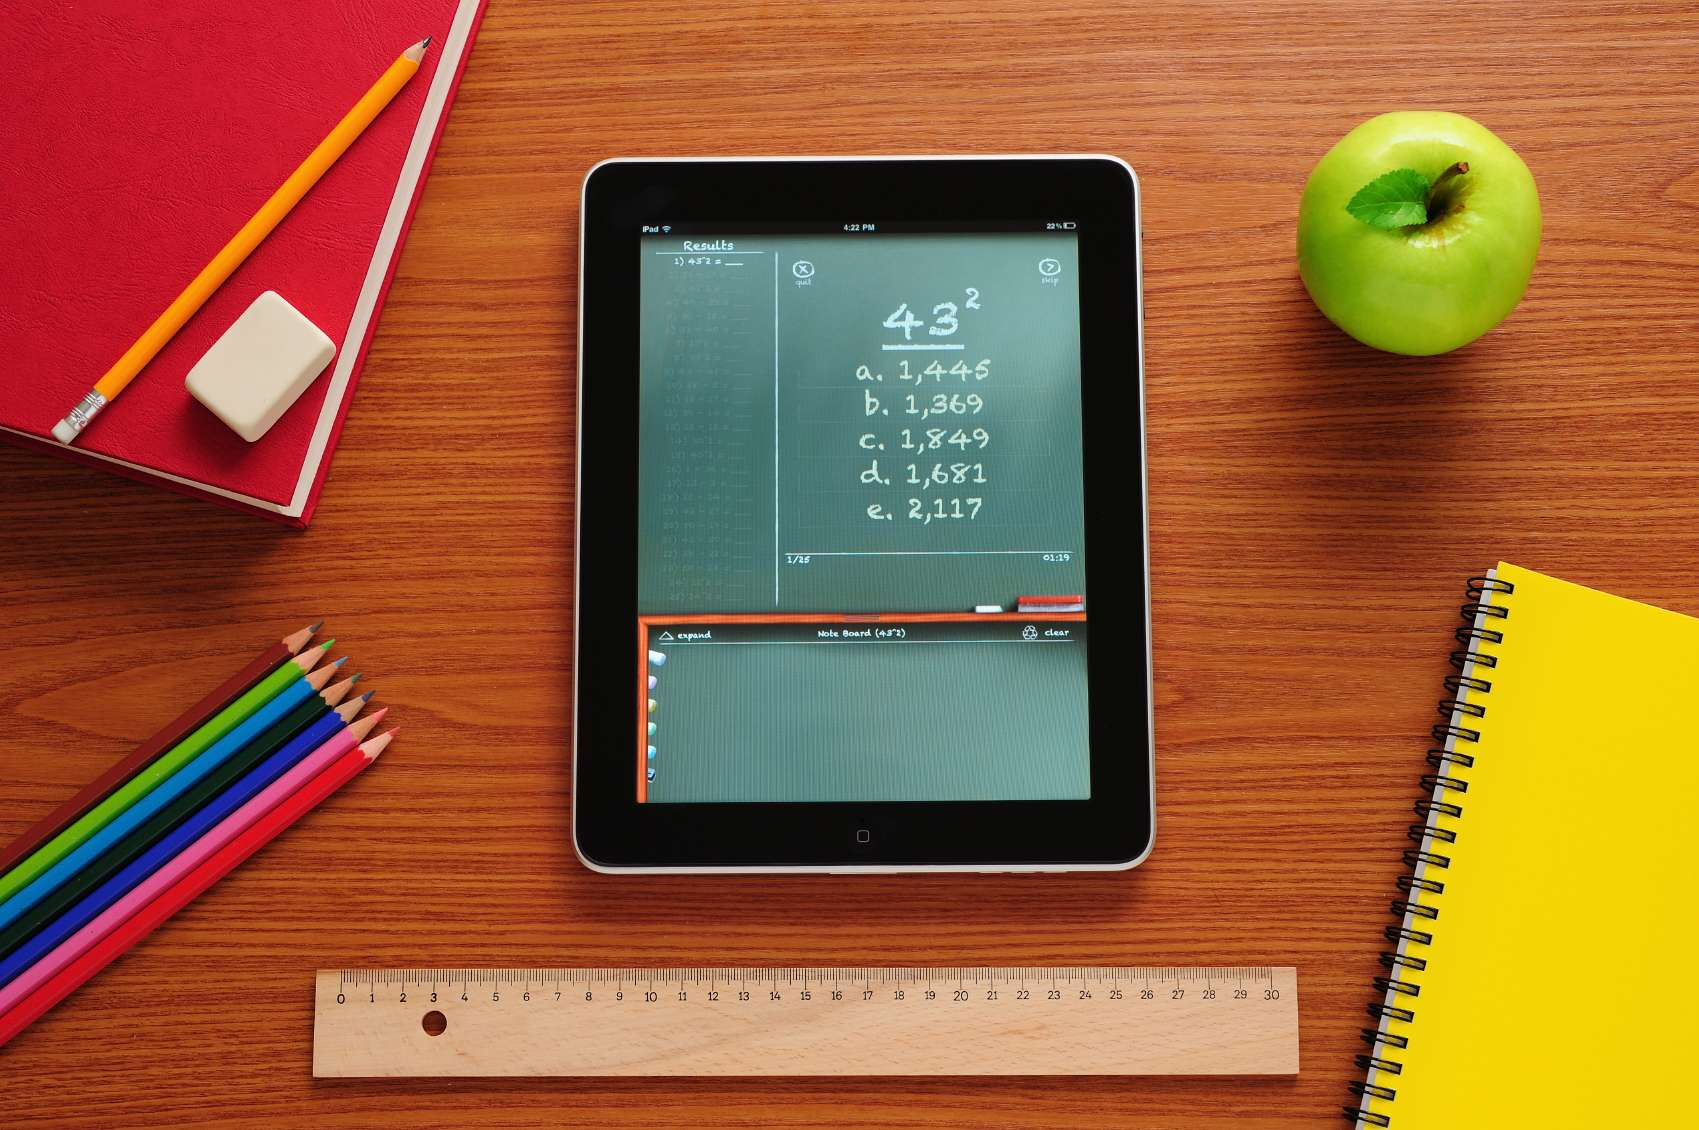 150 More Schools to Benefit from Tablet Programme